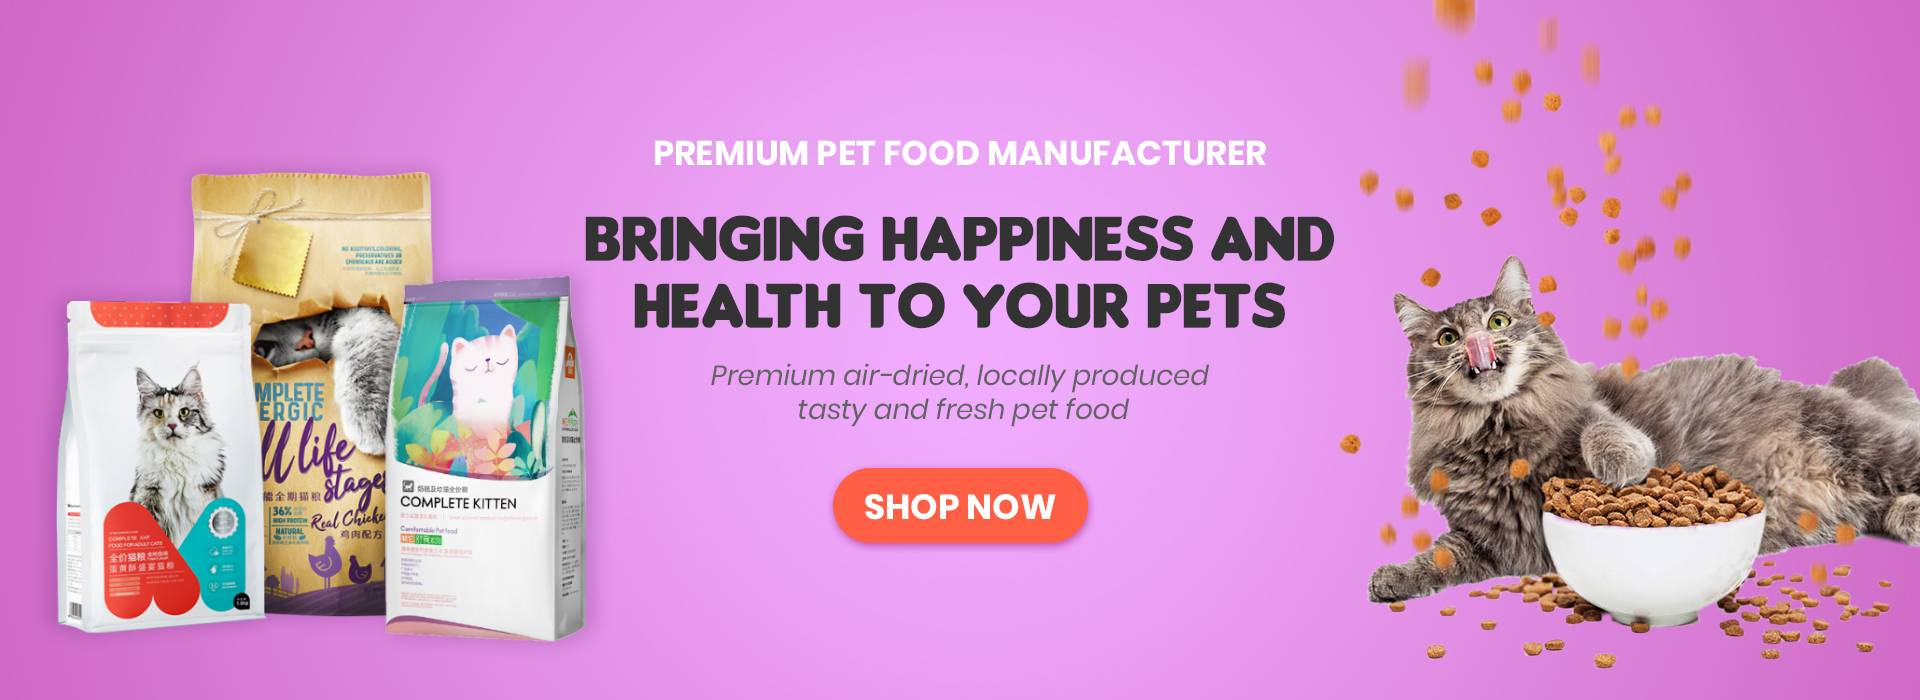 Bringing Happiness and Health to Your Pets